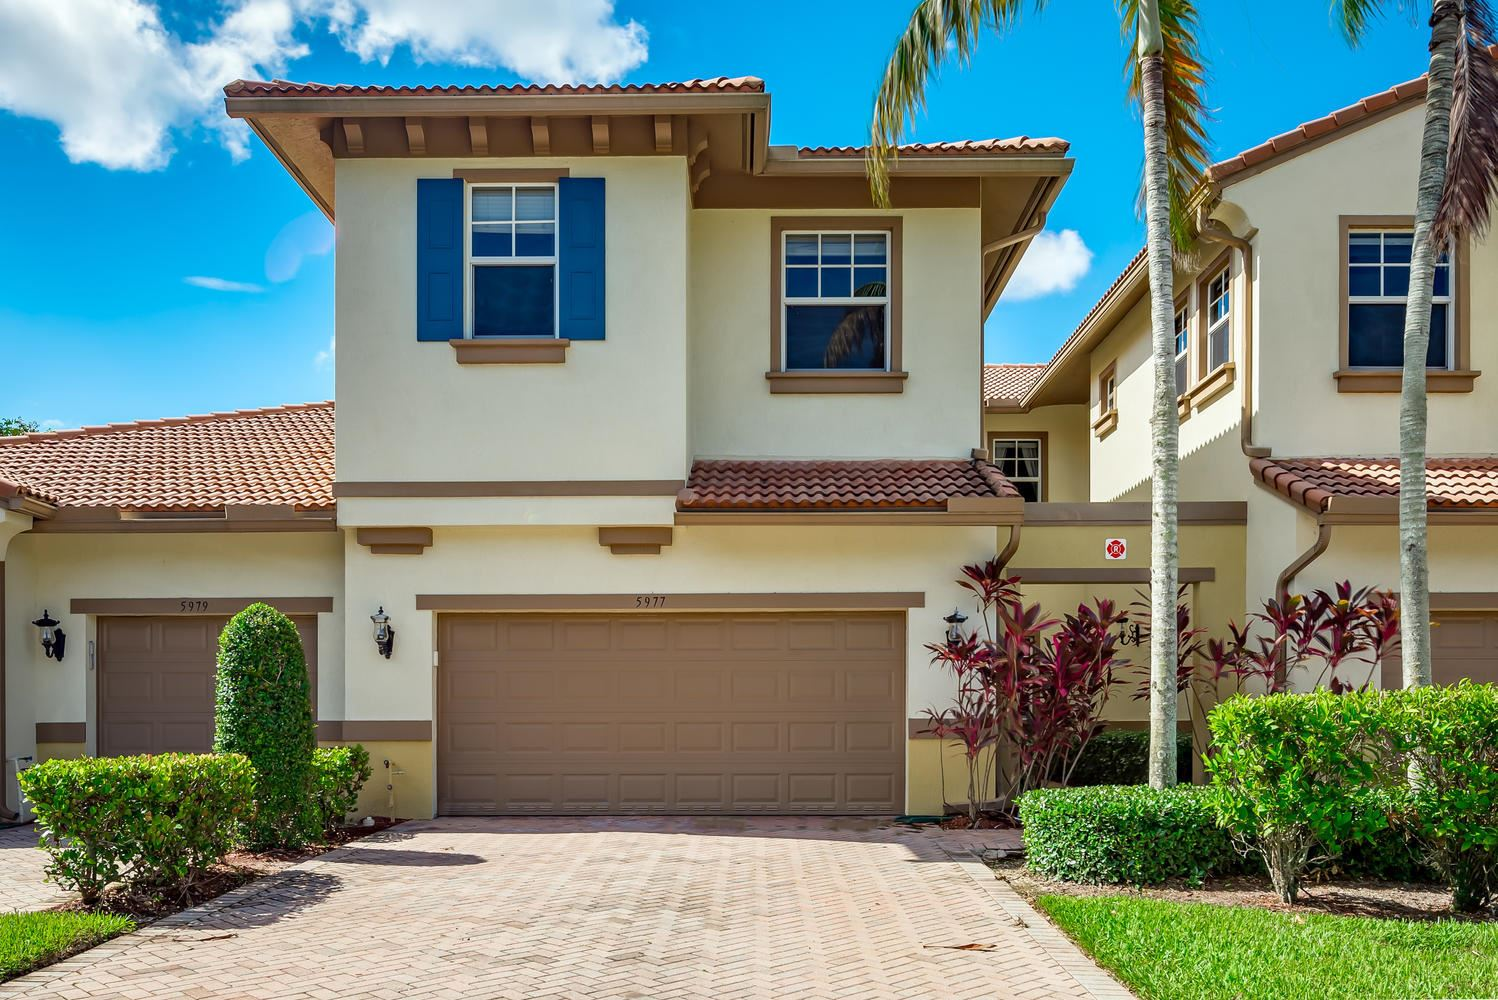 5977 NW 116th Drive, Coral Springs, FL 33076 - #: RX-10643839